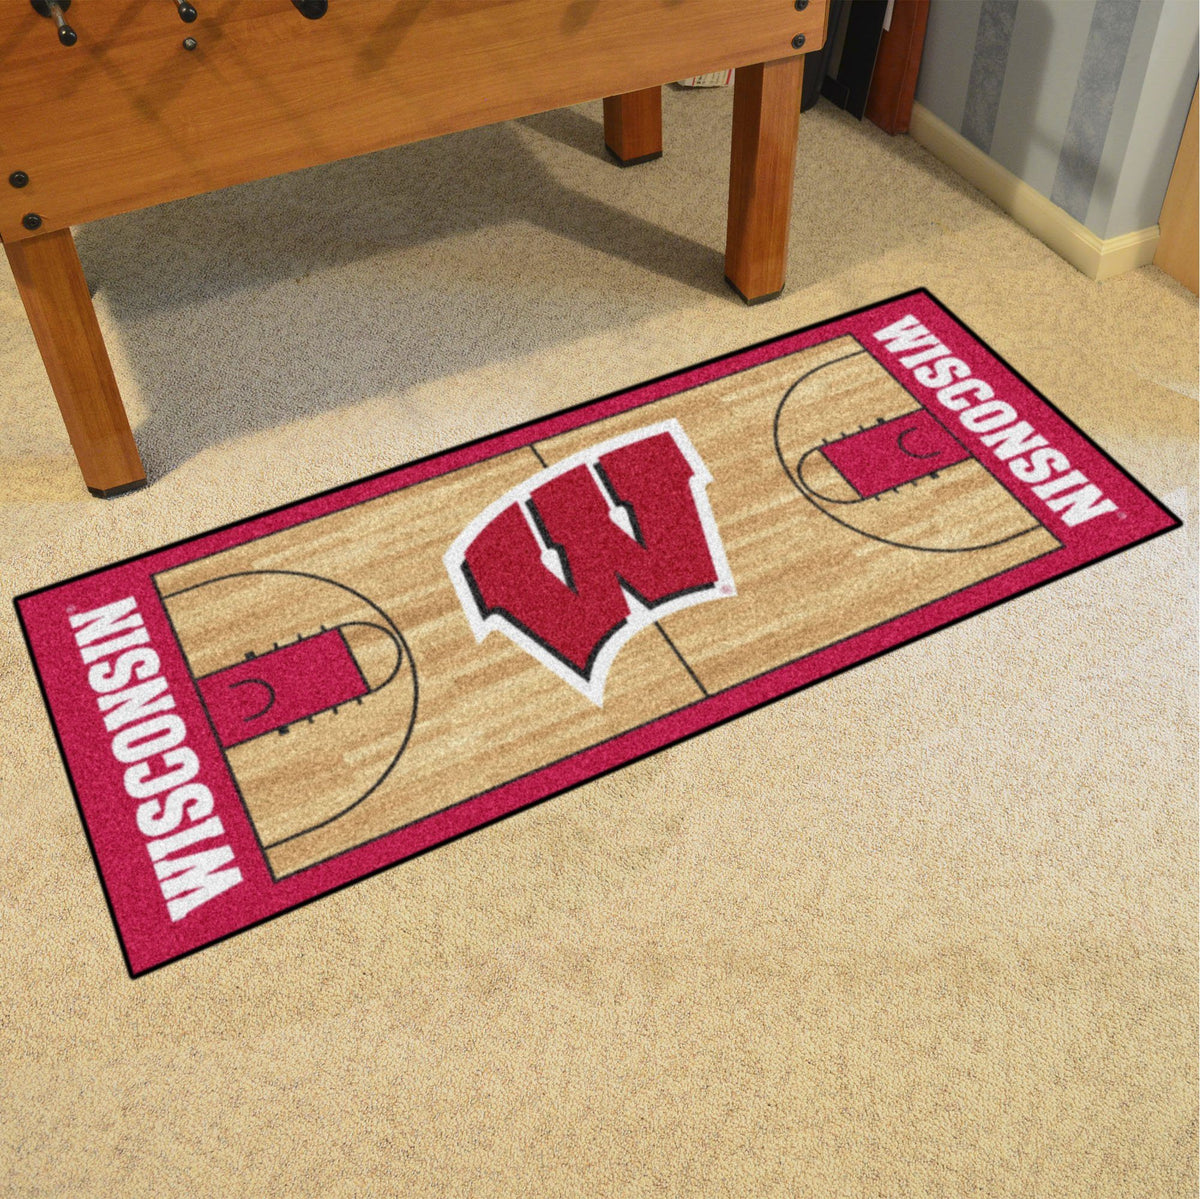 Collegiate - NCAA Basketball Runner Collegiate Mats, Rectangular Mats, NCAA Basketball Runner, Collegiate, Home Fan Mats Wisconsin